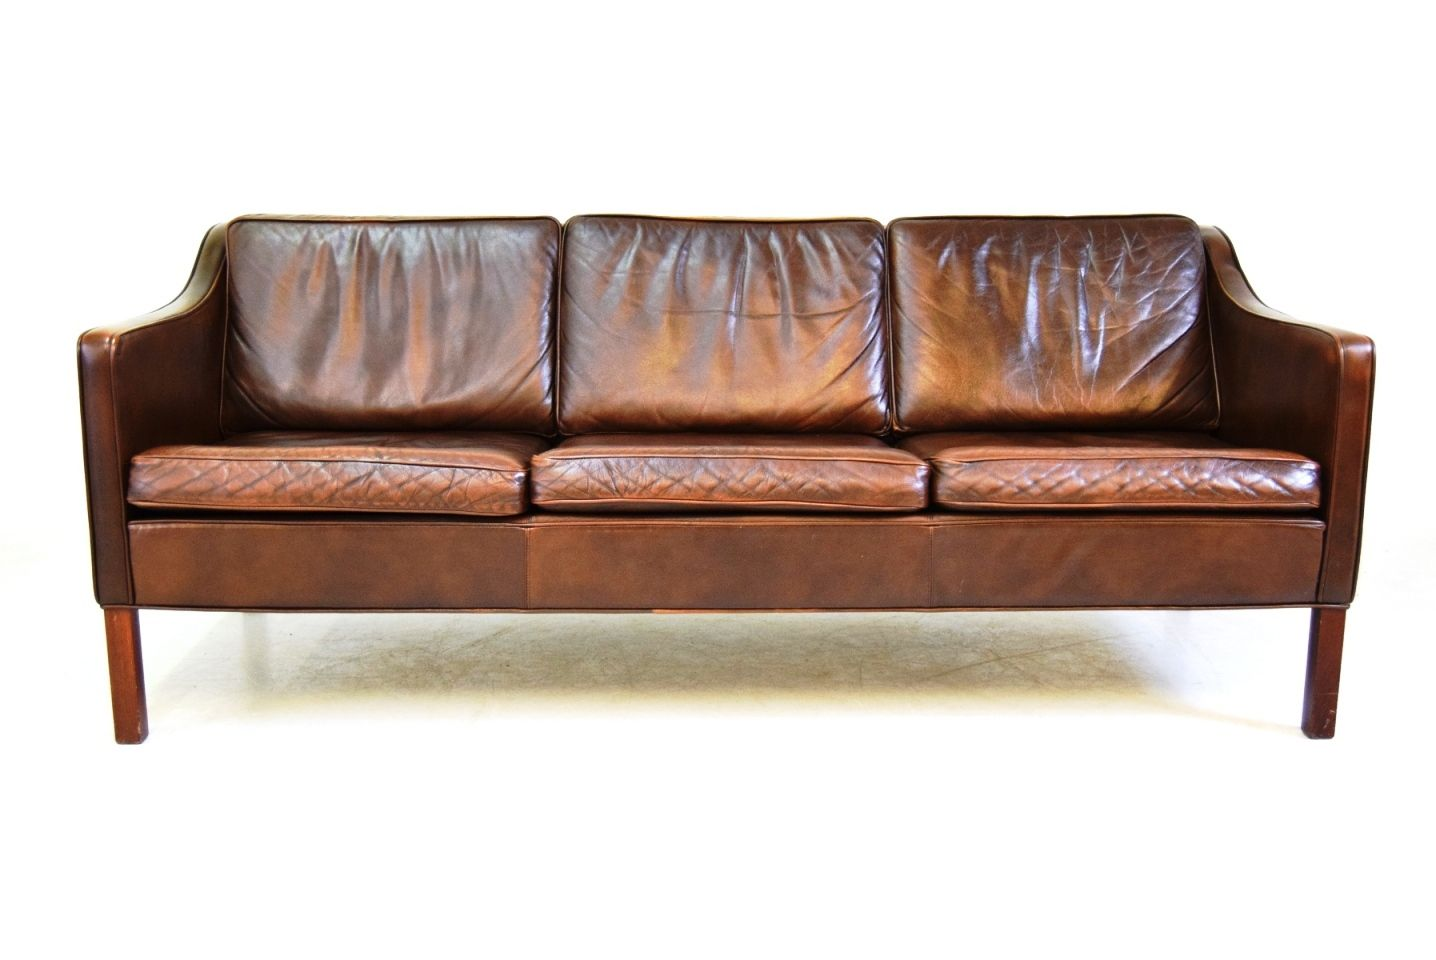 Vintage brown leather 3 seater sofa from mogens hansen for sale at pamono Vintage tan leather sofa